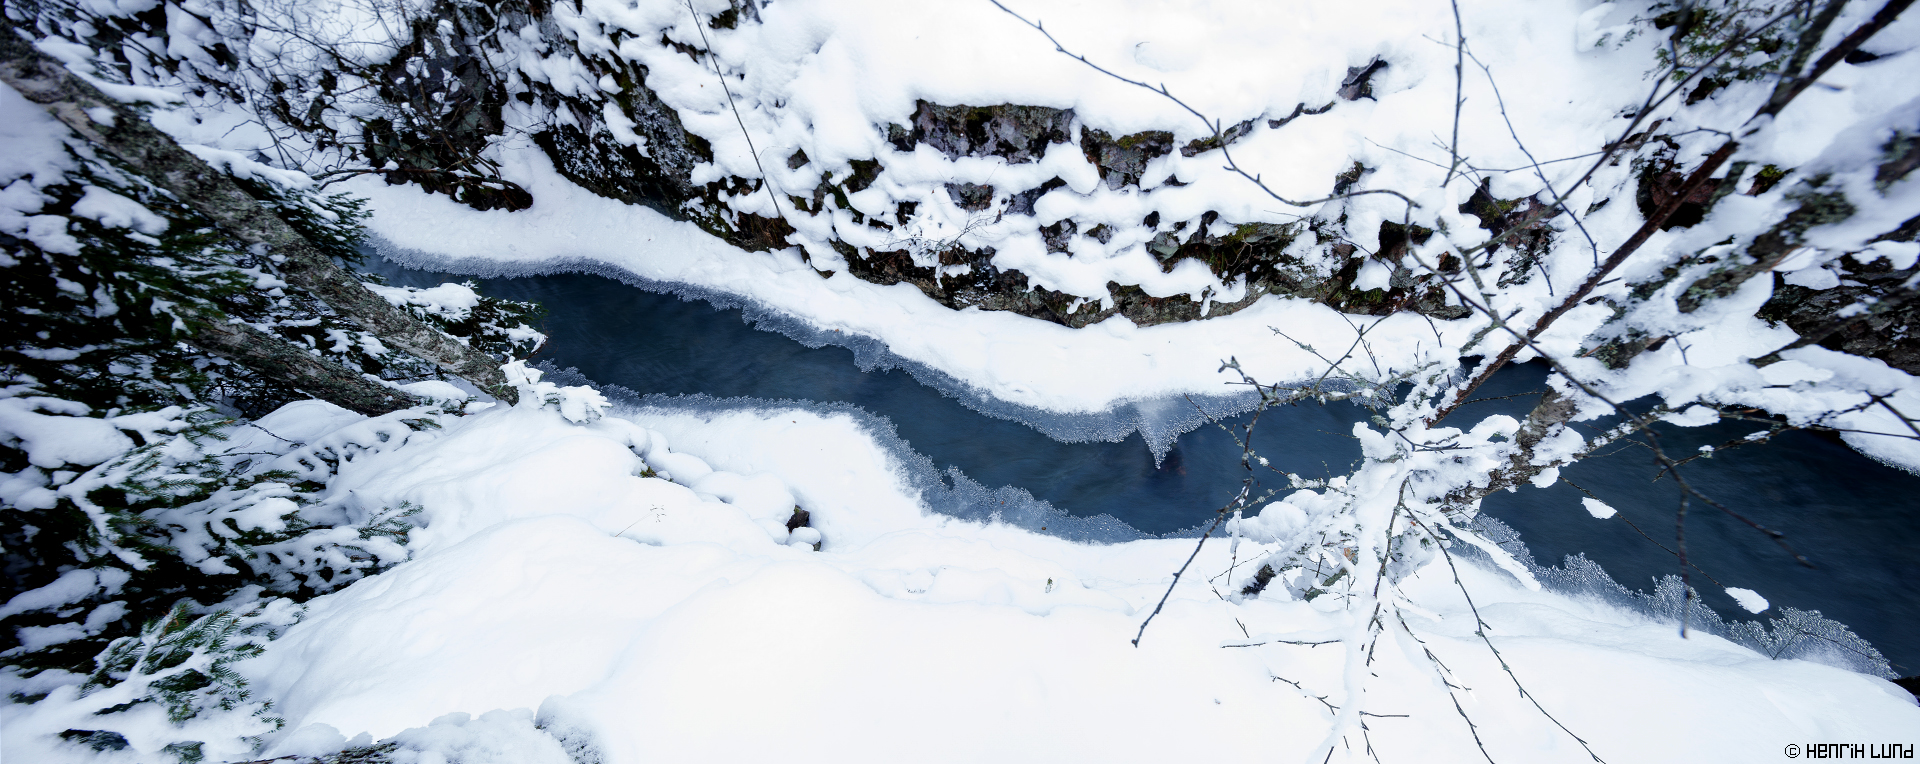 Detail panorama over a small rapids covered in snow and ice. Ålhusbäcken, Liljendal, Lovisa, Finland. January 2016.